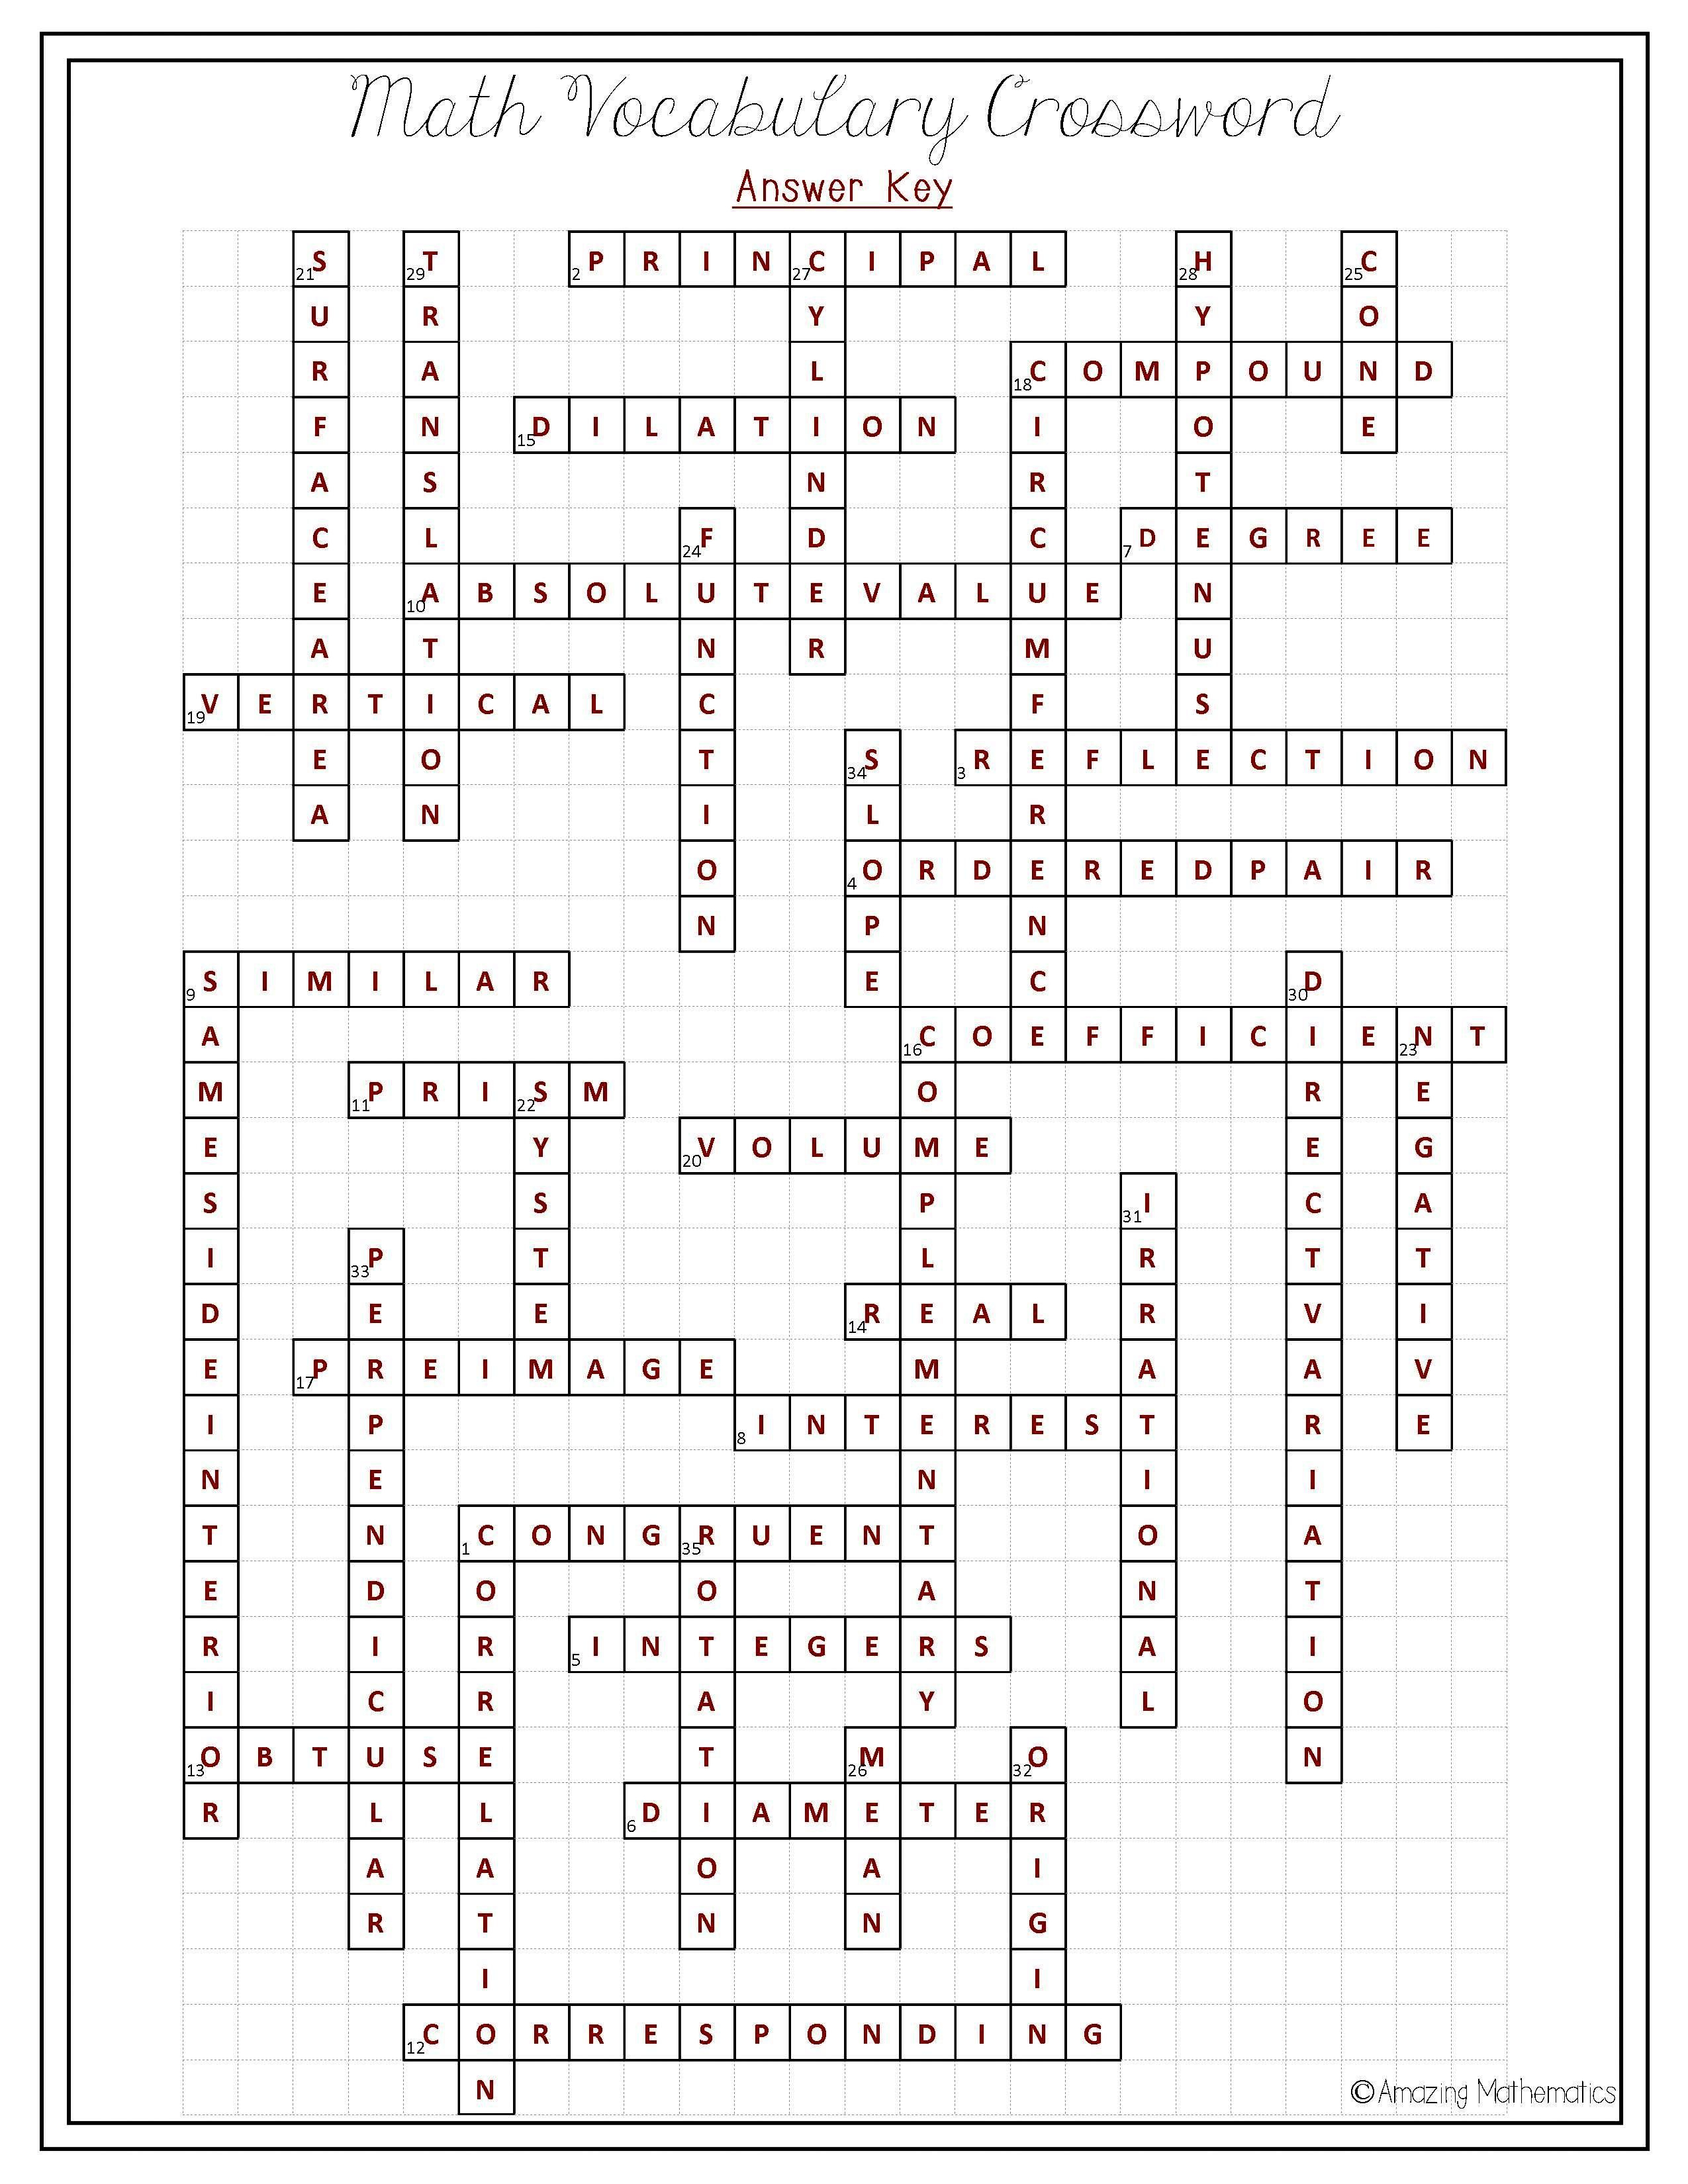 8Th Grade Math Vocabulary Crossword | Puzzles | Math Vocabulary, 8Th - Printable Math Vocabulary Crossword Puzzles